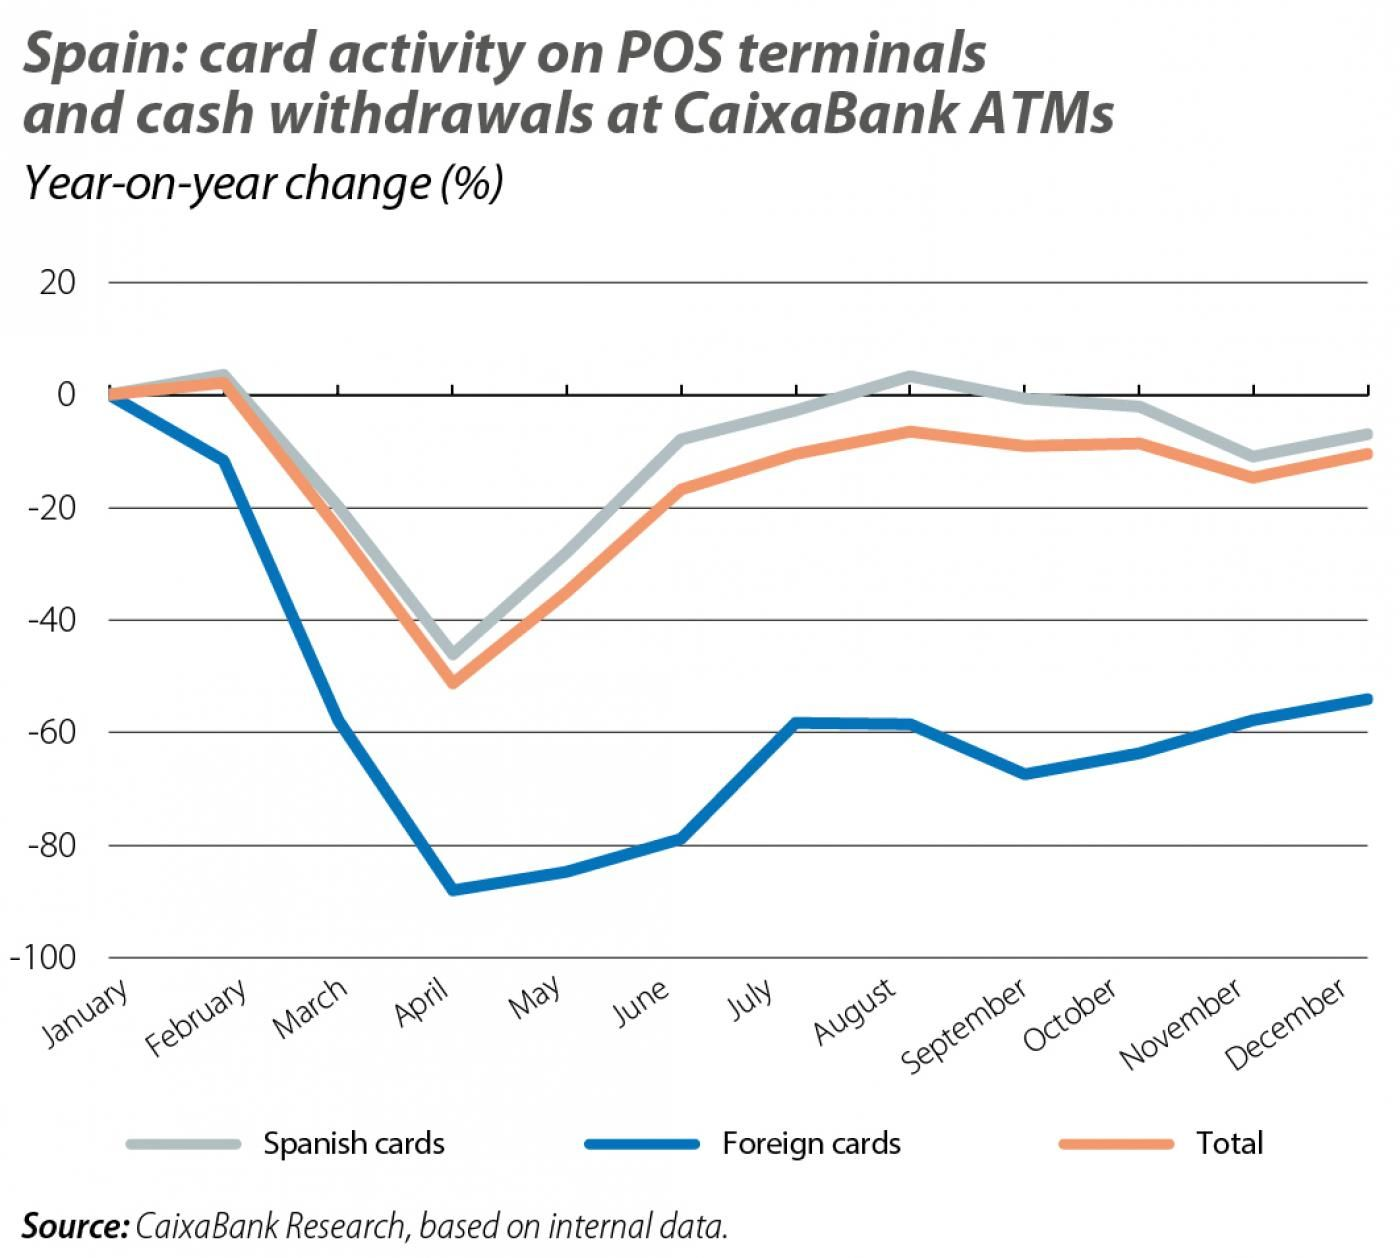 Spain: card activity on POS terminals and cash withdrawals at CaixaBank ATMs